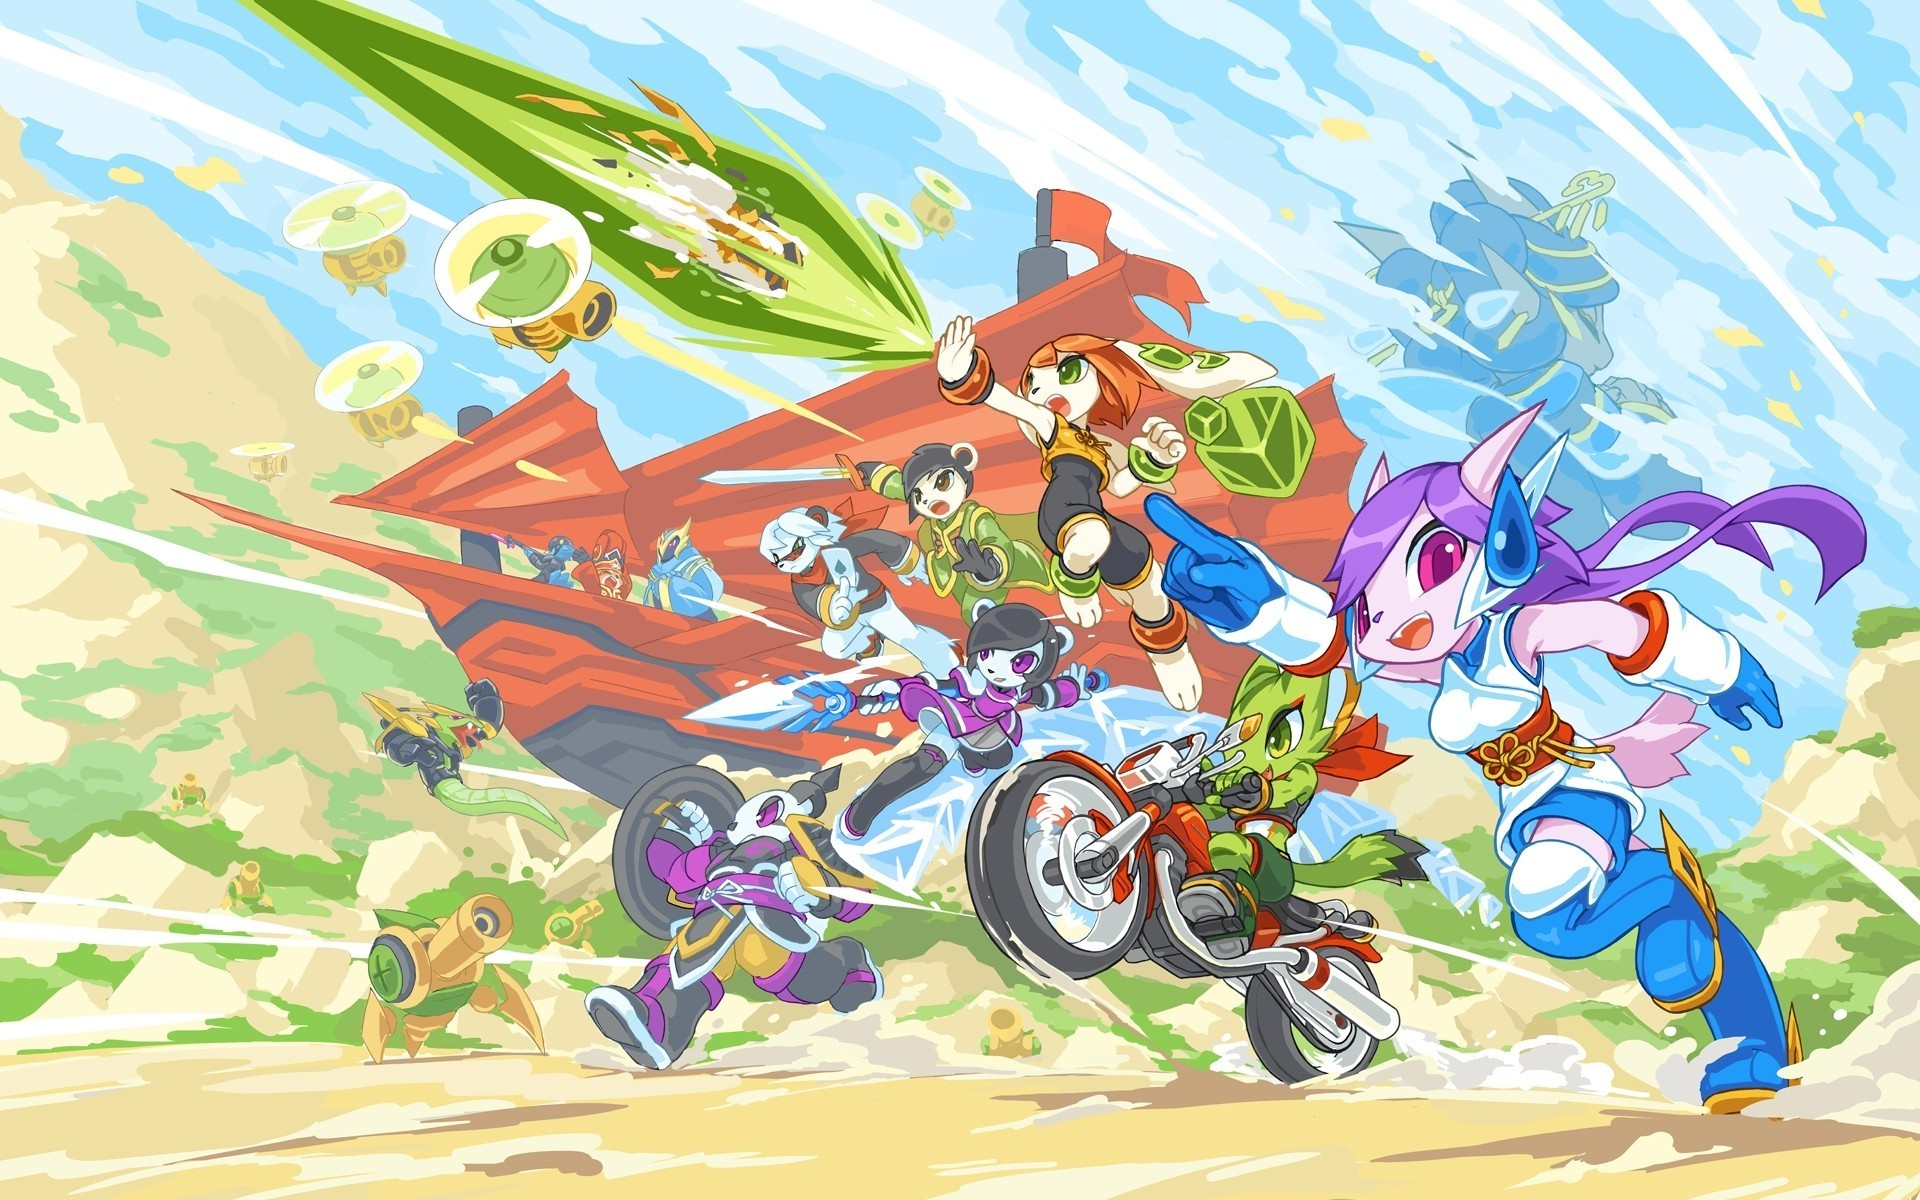 Res: 1920x1200, Freedom Planet, Indie Games Wallpapers HD / Desktop and Mobile Backgrounds